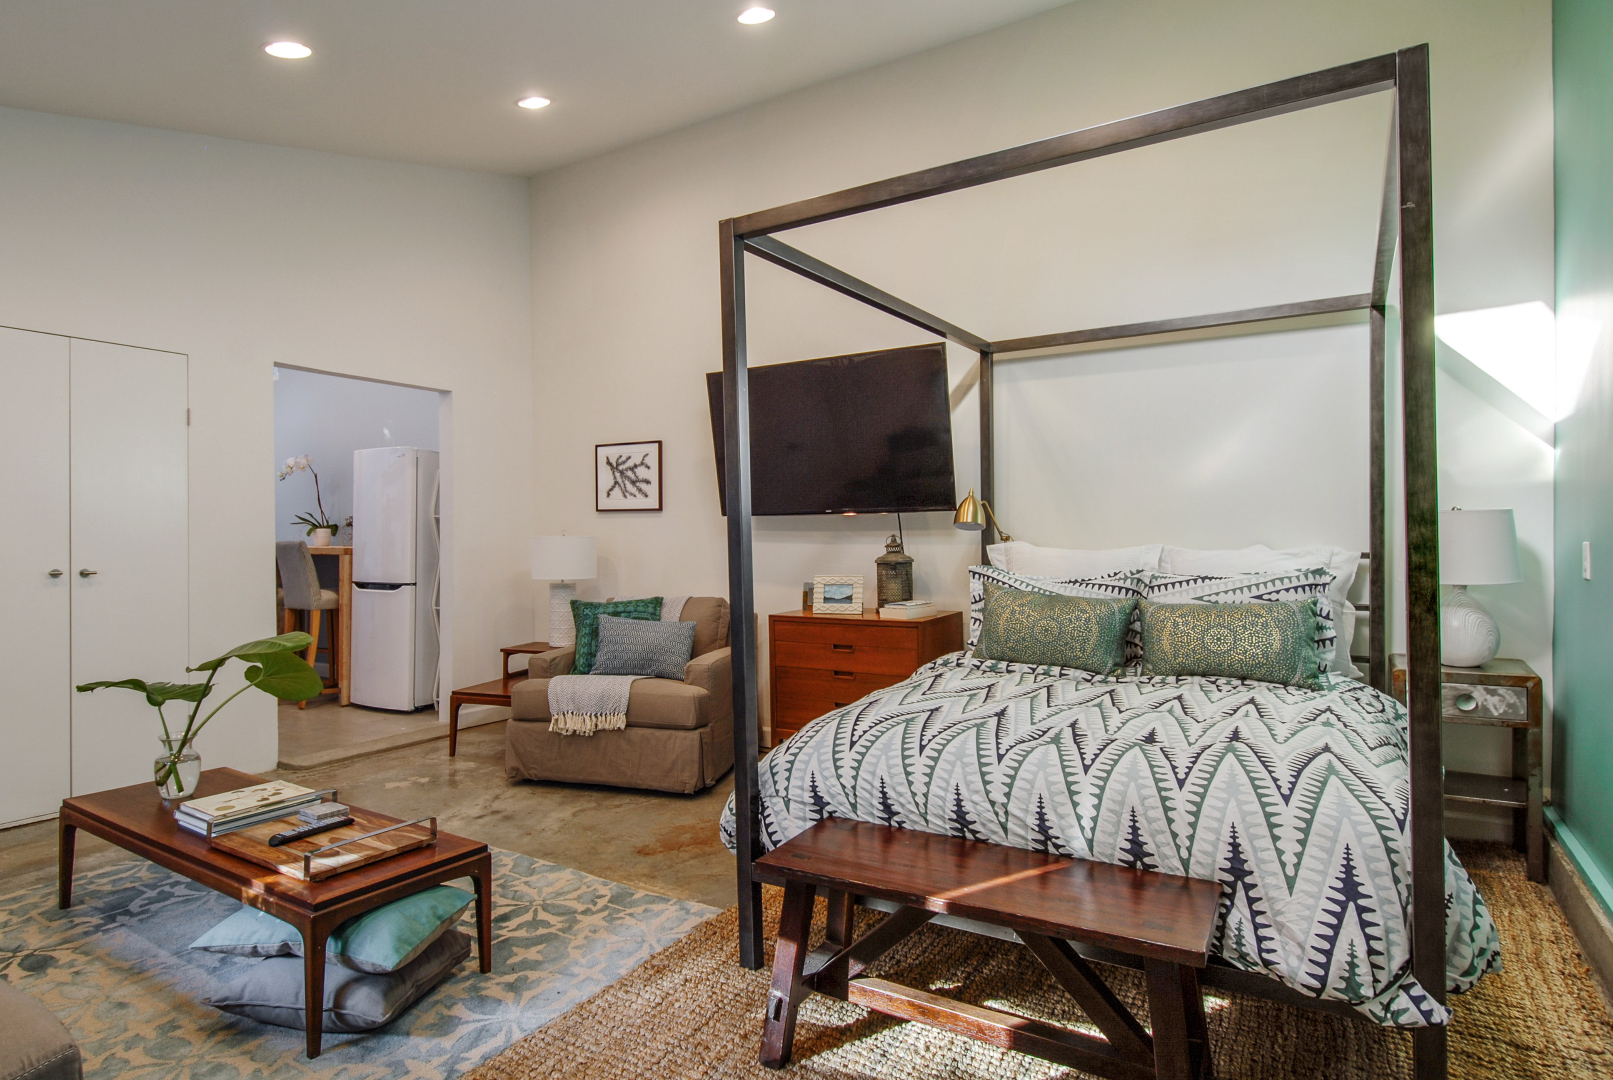 Uptown, Apartment, 1 beds, 1.0 baths, $1900 per month New Orleans Rental - devie image_2